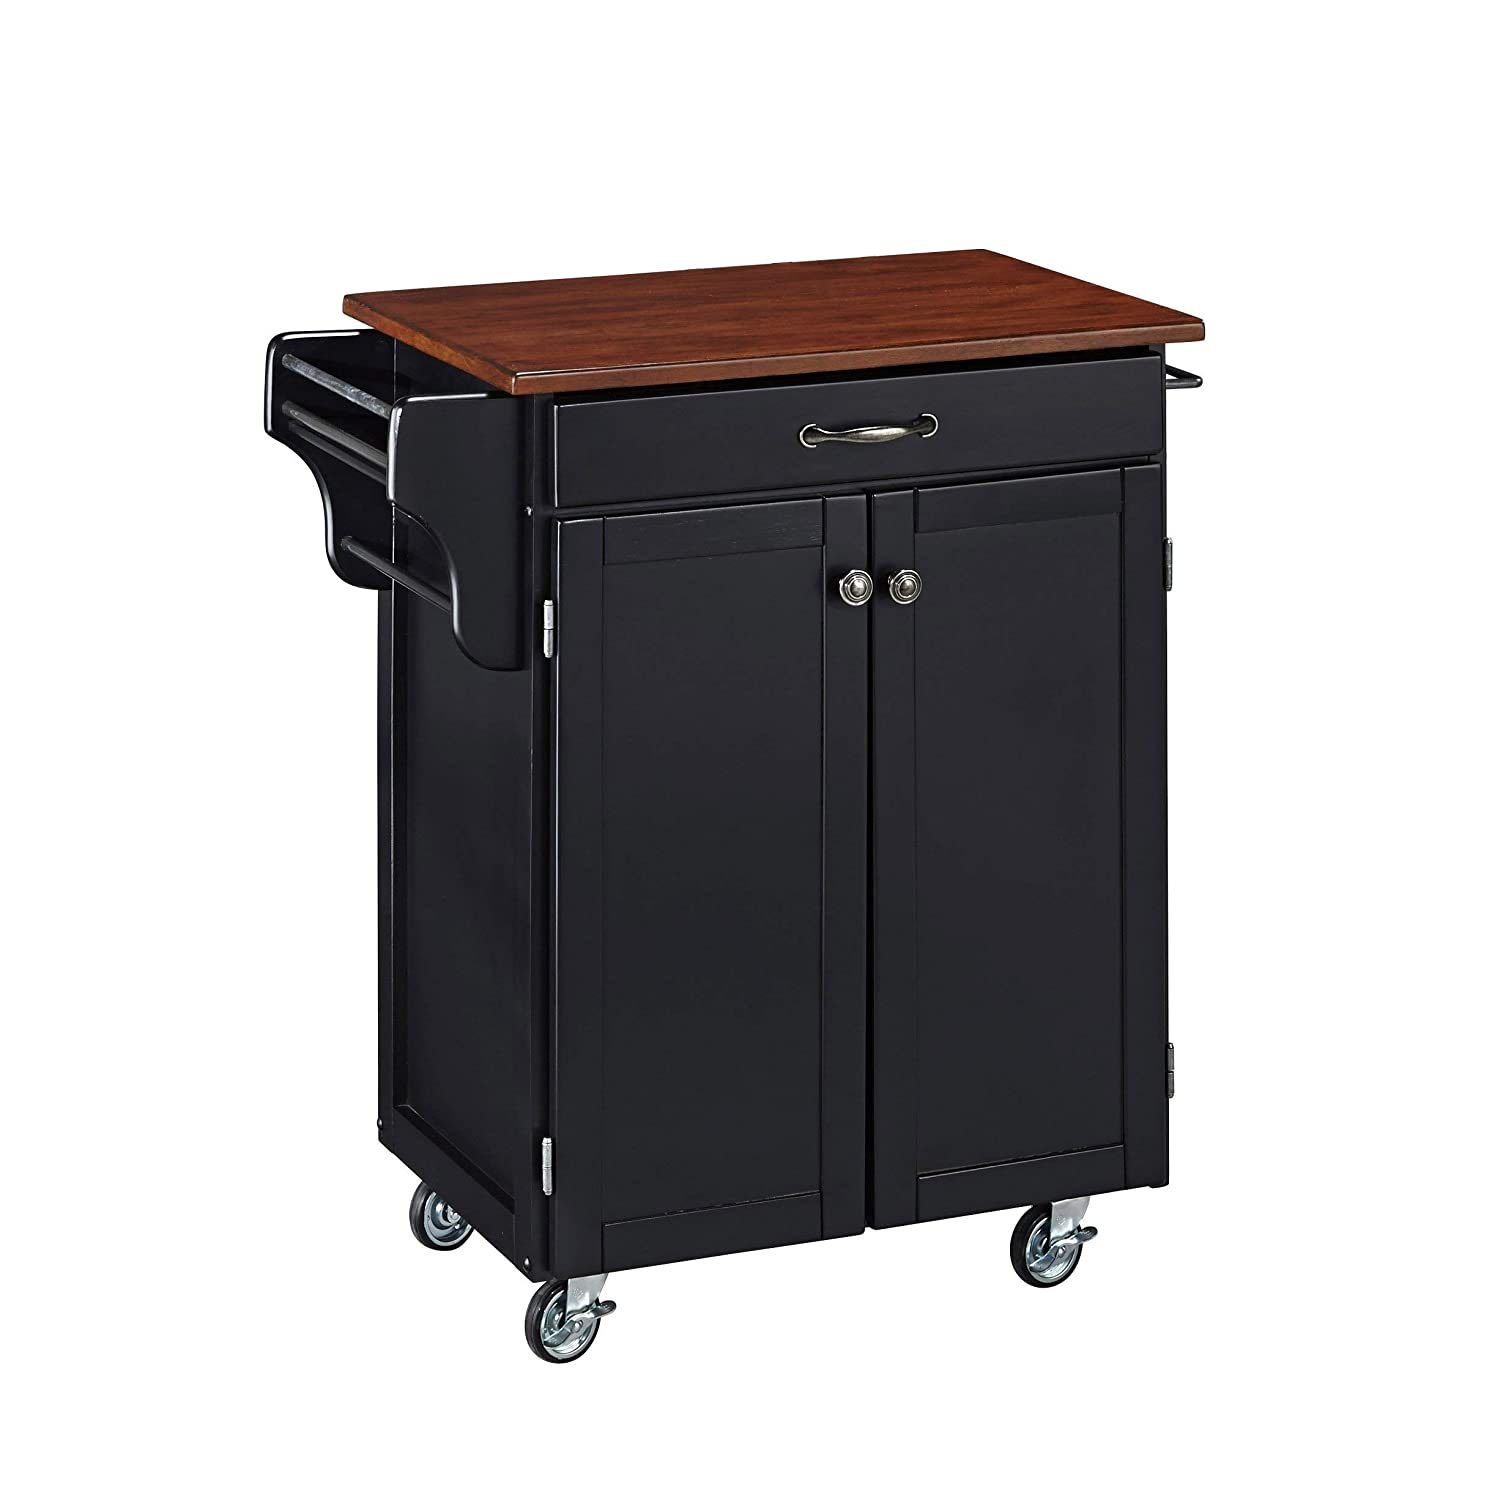 Home Styles Cuisine Cart, Black Finish with Cherry Top